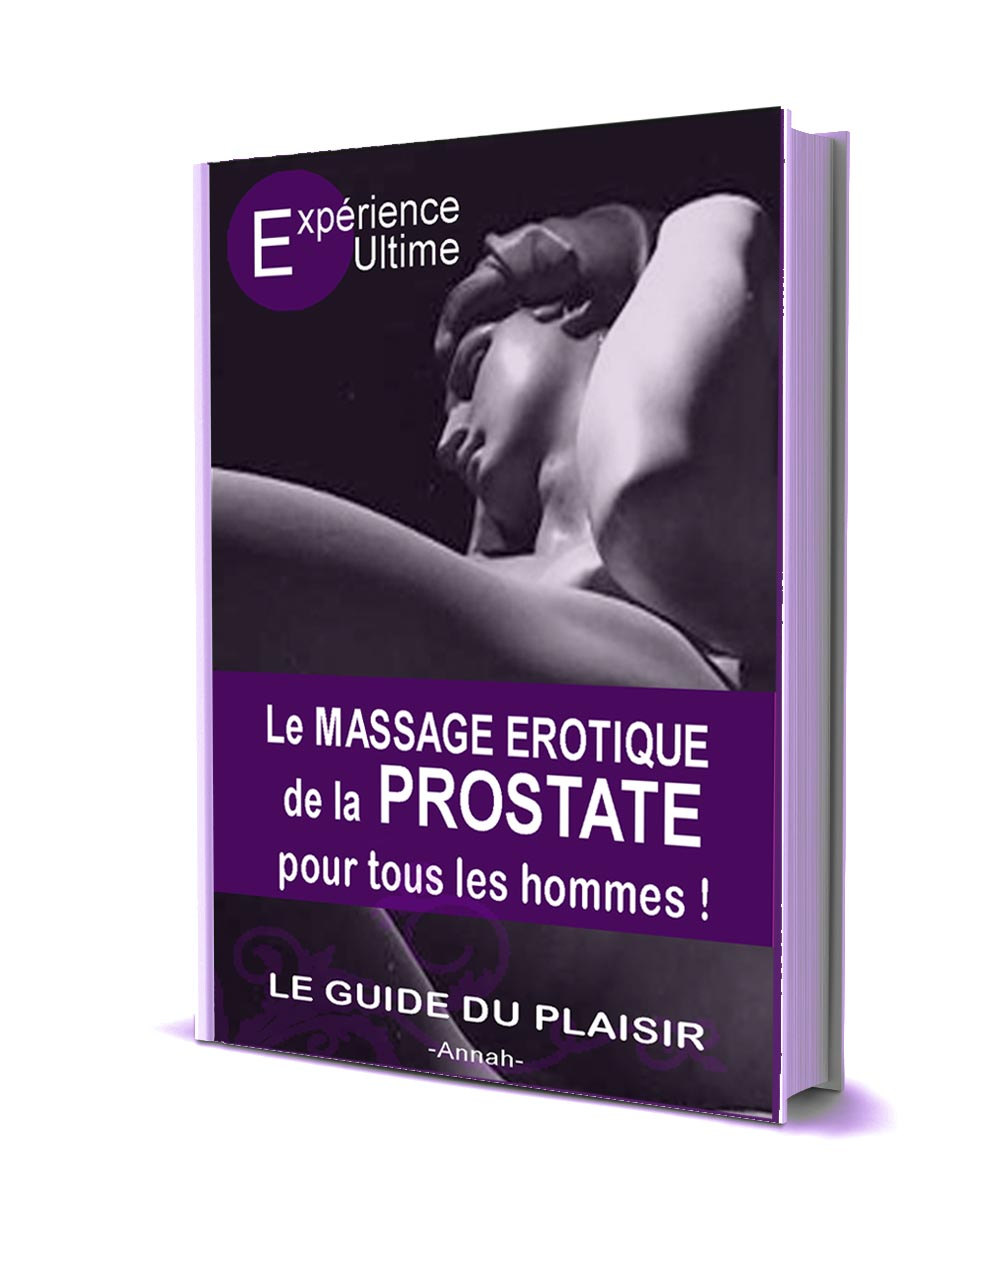 ebook prostate 3d vente 2